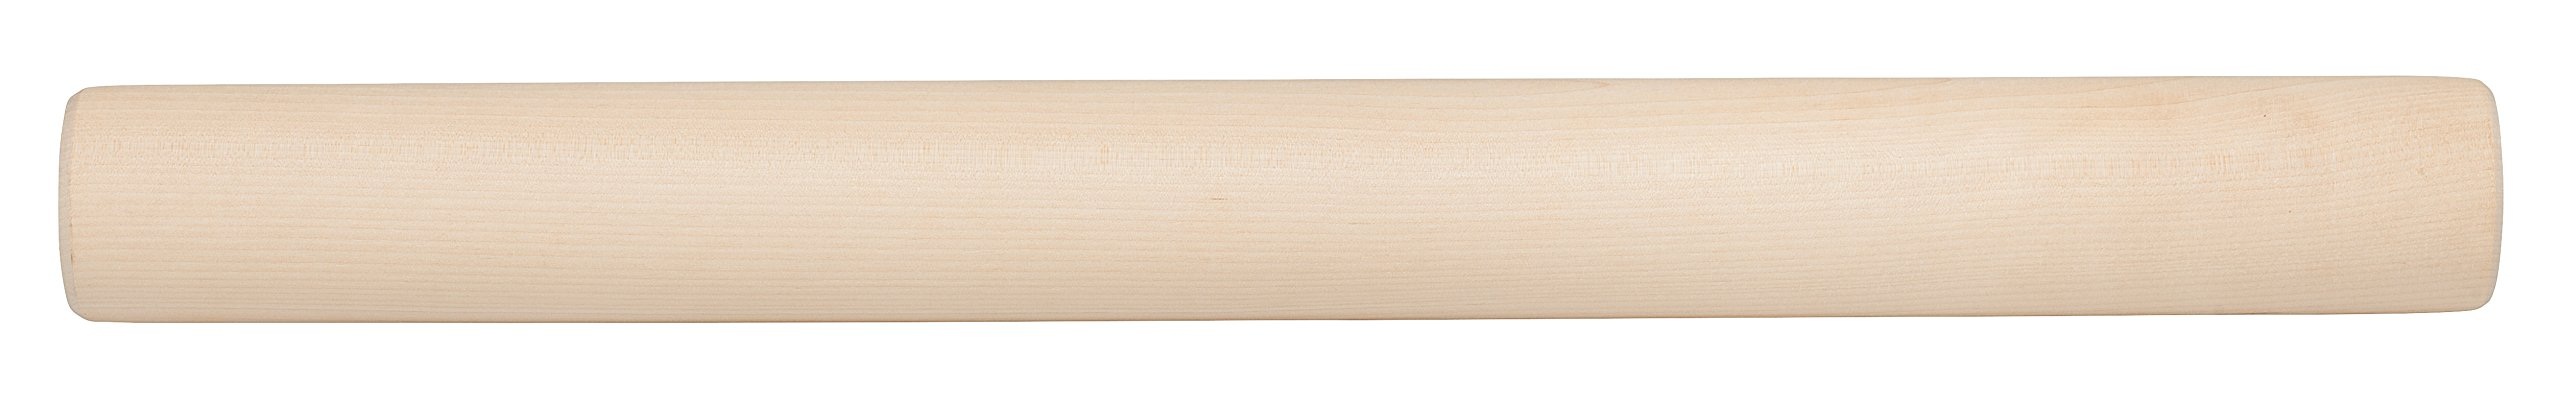 Mrs. Anderson's Baking Wooden Bakers Rolling Pin, 20 by 2-Inch